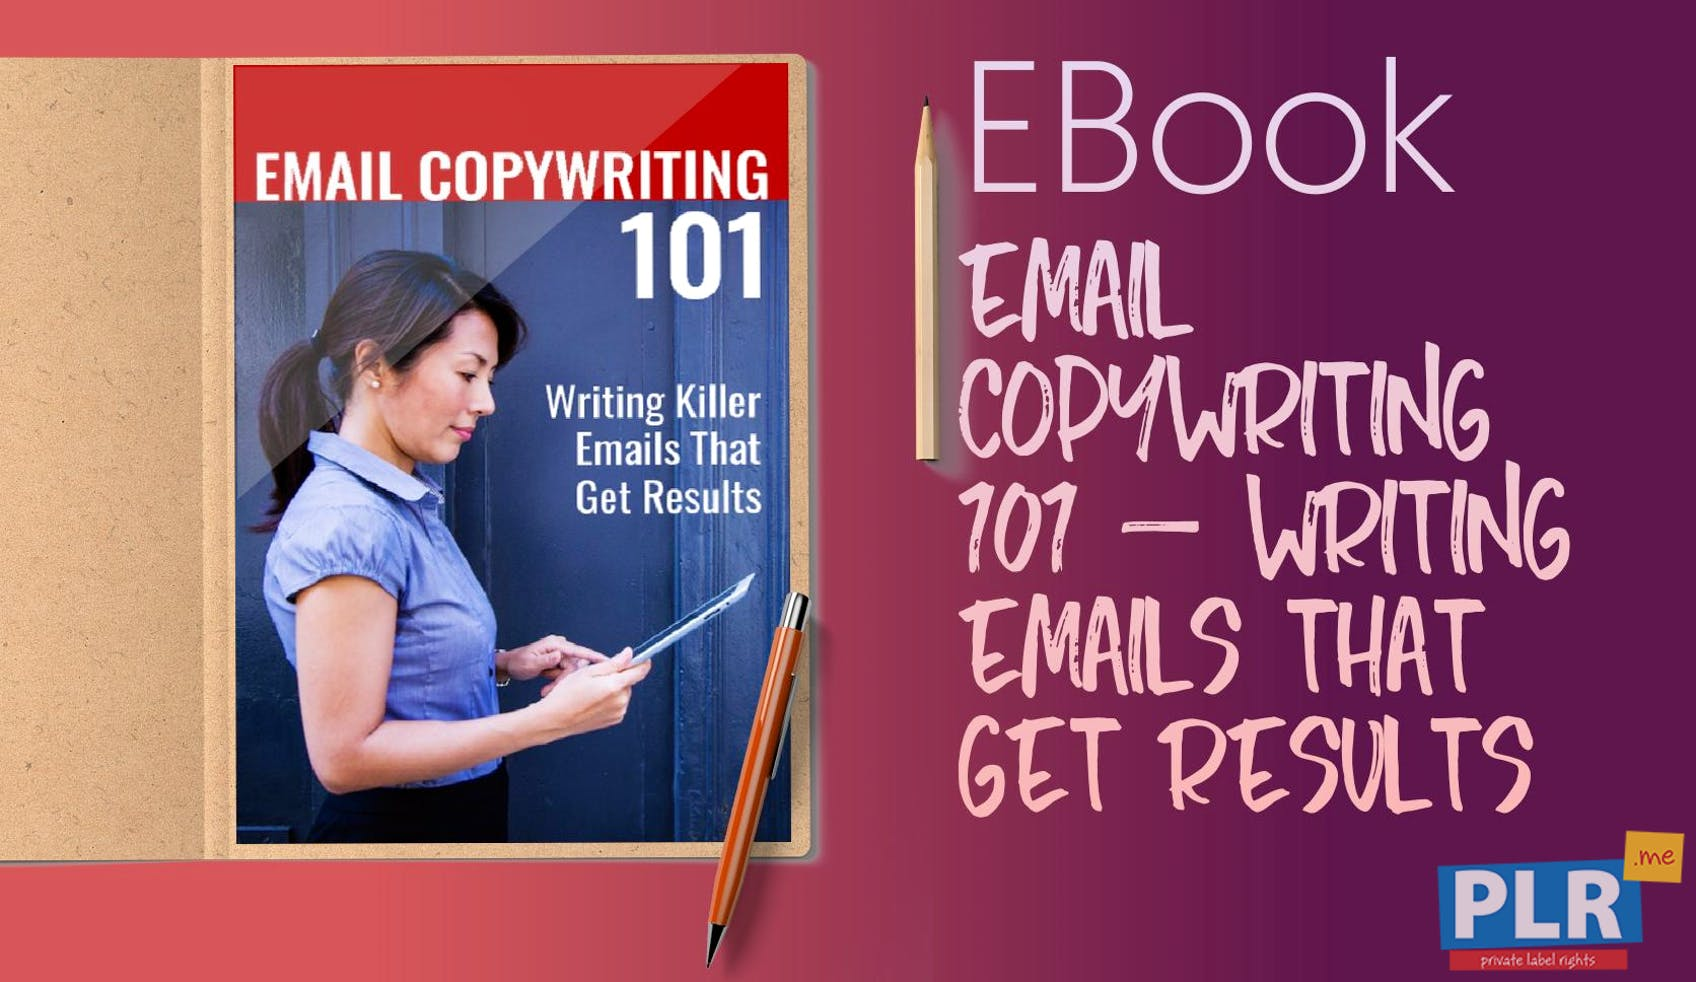 Email Copywriting 101 - Writing Emails That Get Results